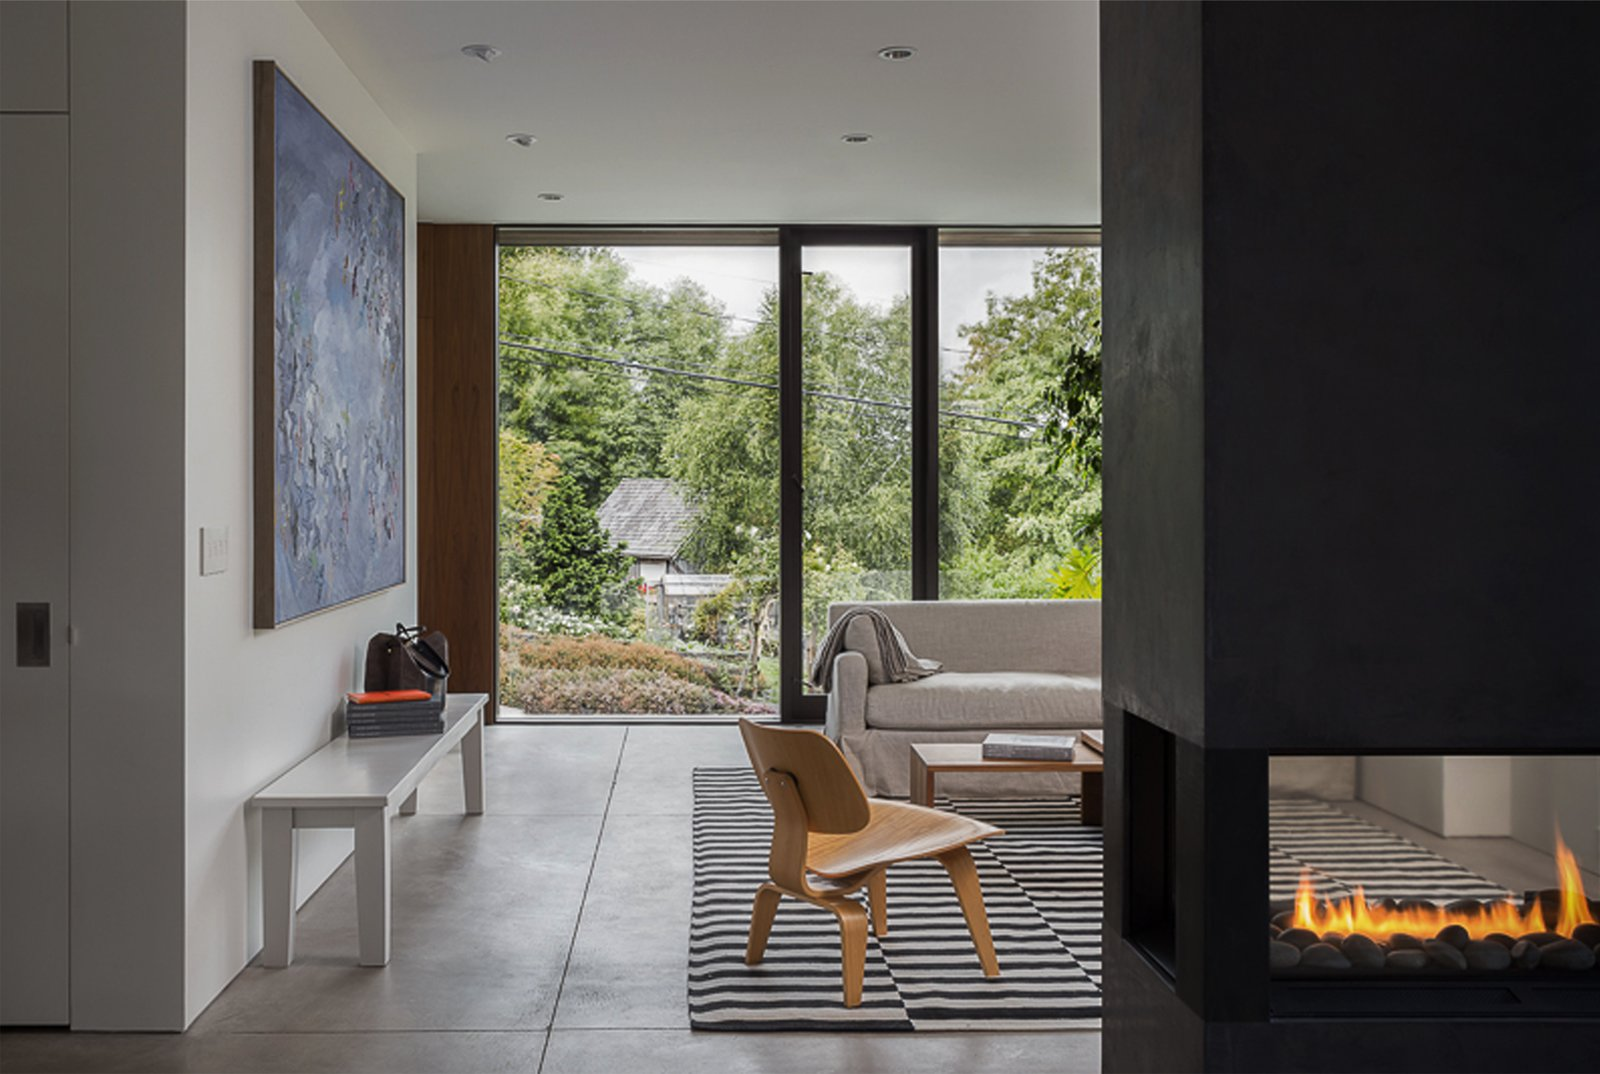 Living Room, Concrete Floor, and Two-Sided Fireplace Helen Street by mw|works  Helen Street by mw|works